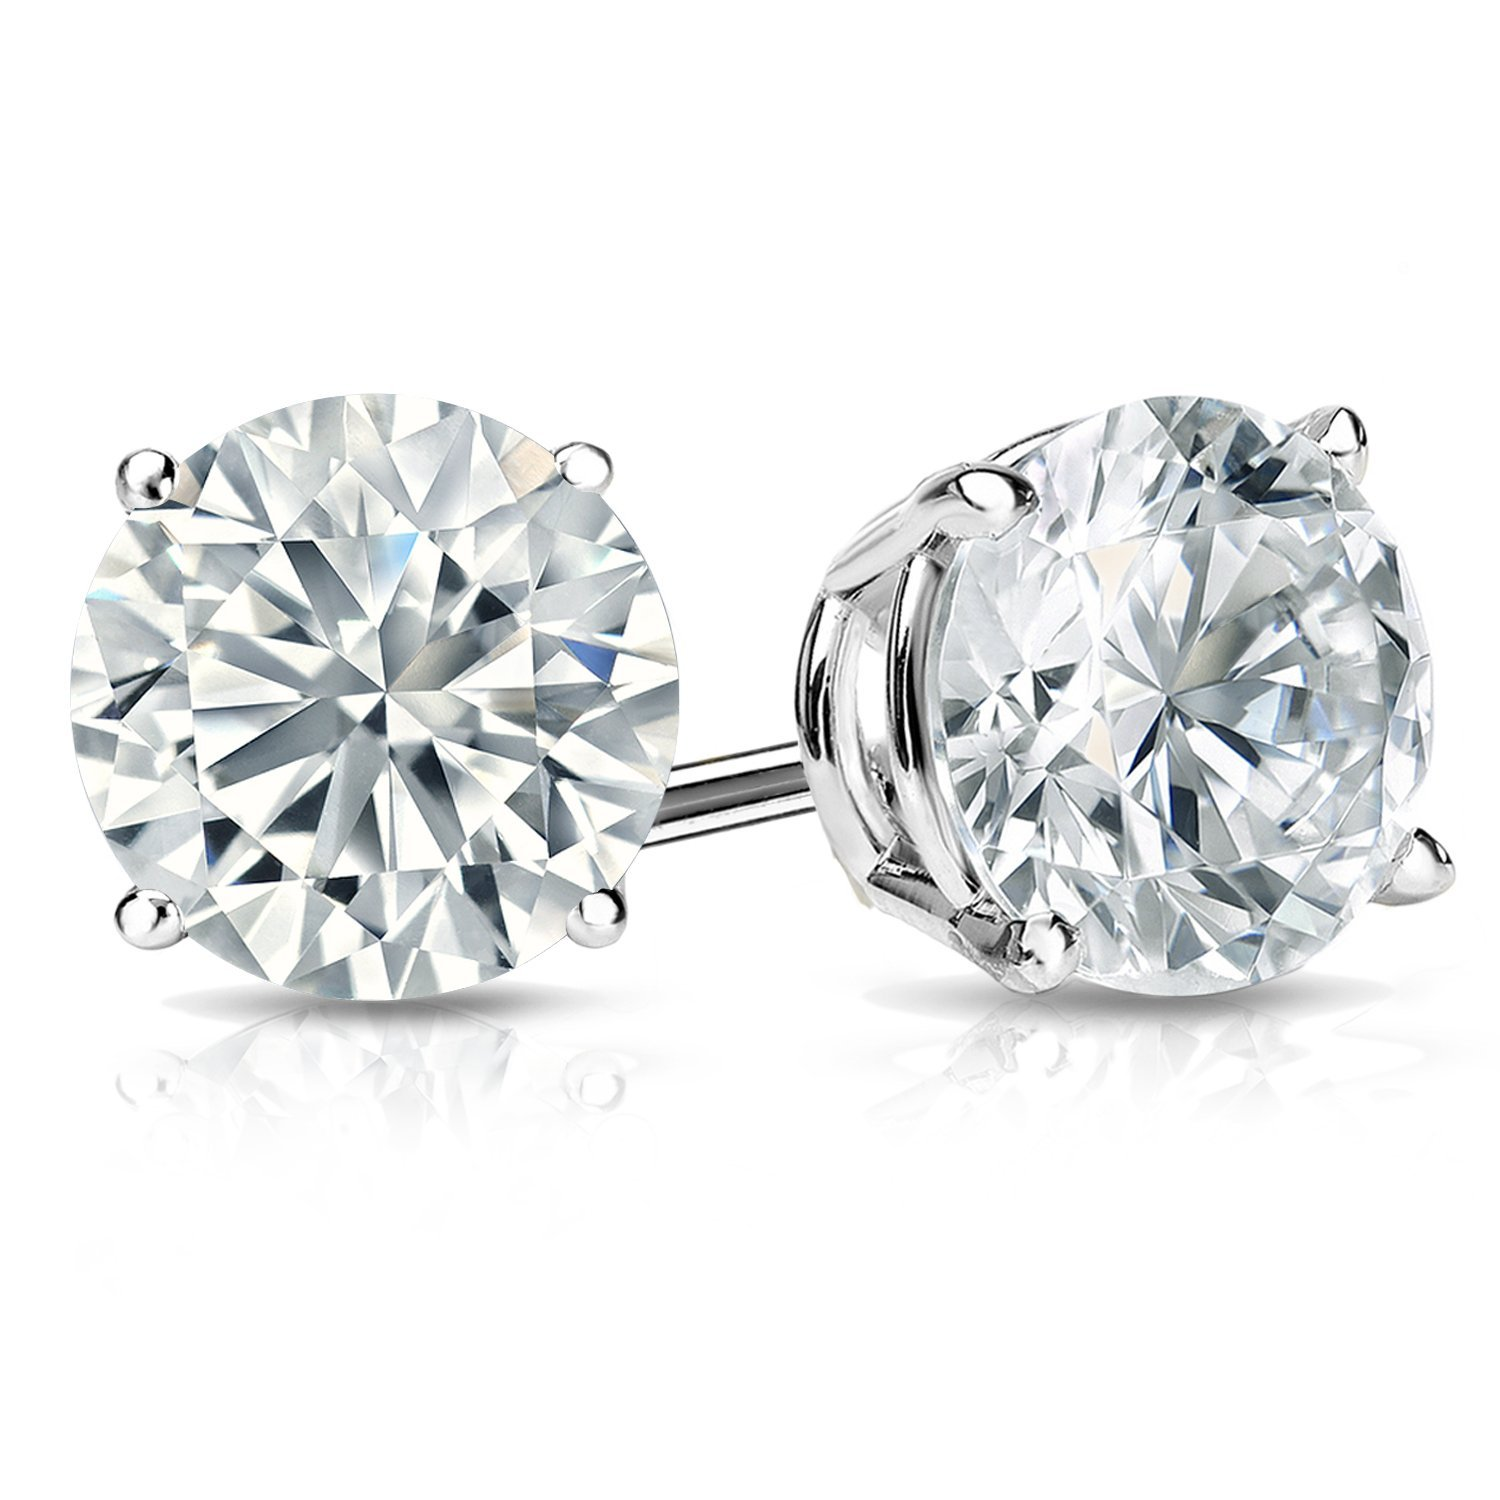 road gold dimond earrings product luxury triple stone london diamond stud bubble white